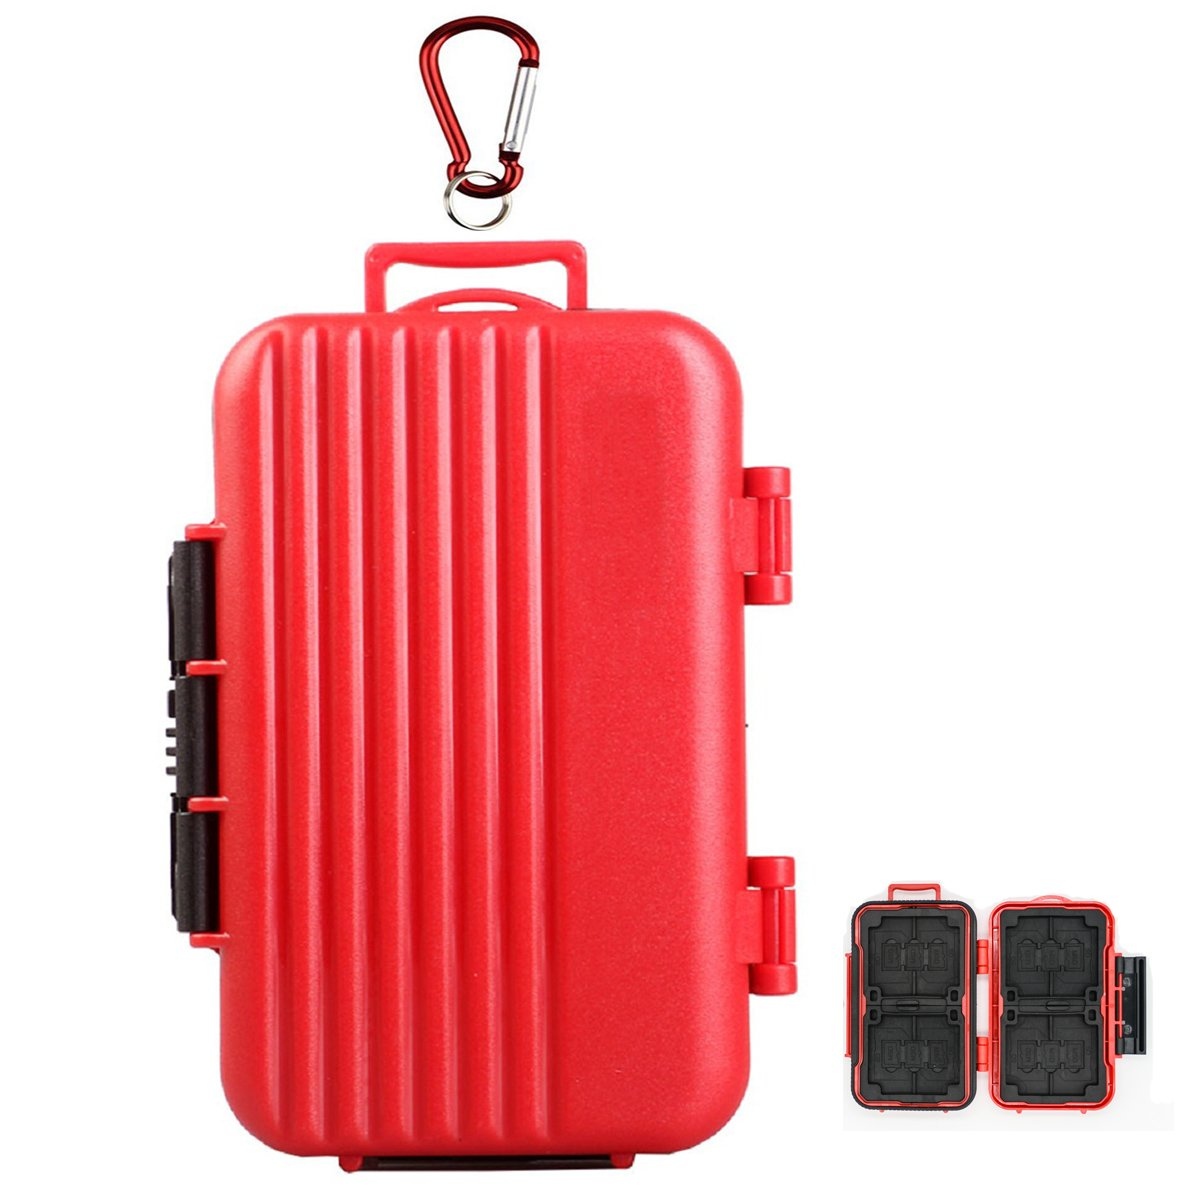 LXH Waterproof & Shockproof 24 Slots Luggage Memory Card Storage Case Fits 4 (CF) Compact Flash & 8 Secure Digital (SD) & 12 TF / Micro SD Card Storage Holder (SDHC / SDXC / TF) With Carabiner (Red) LYNCA